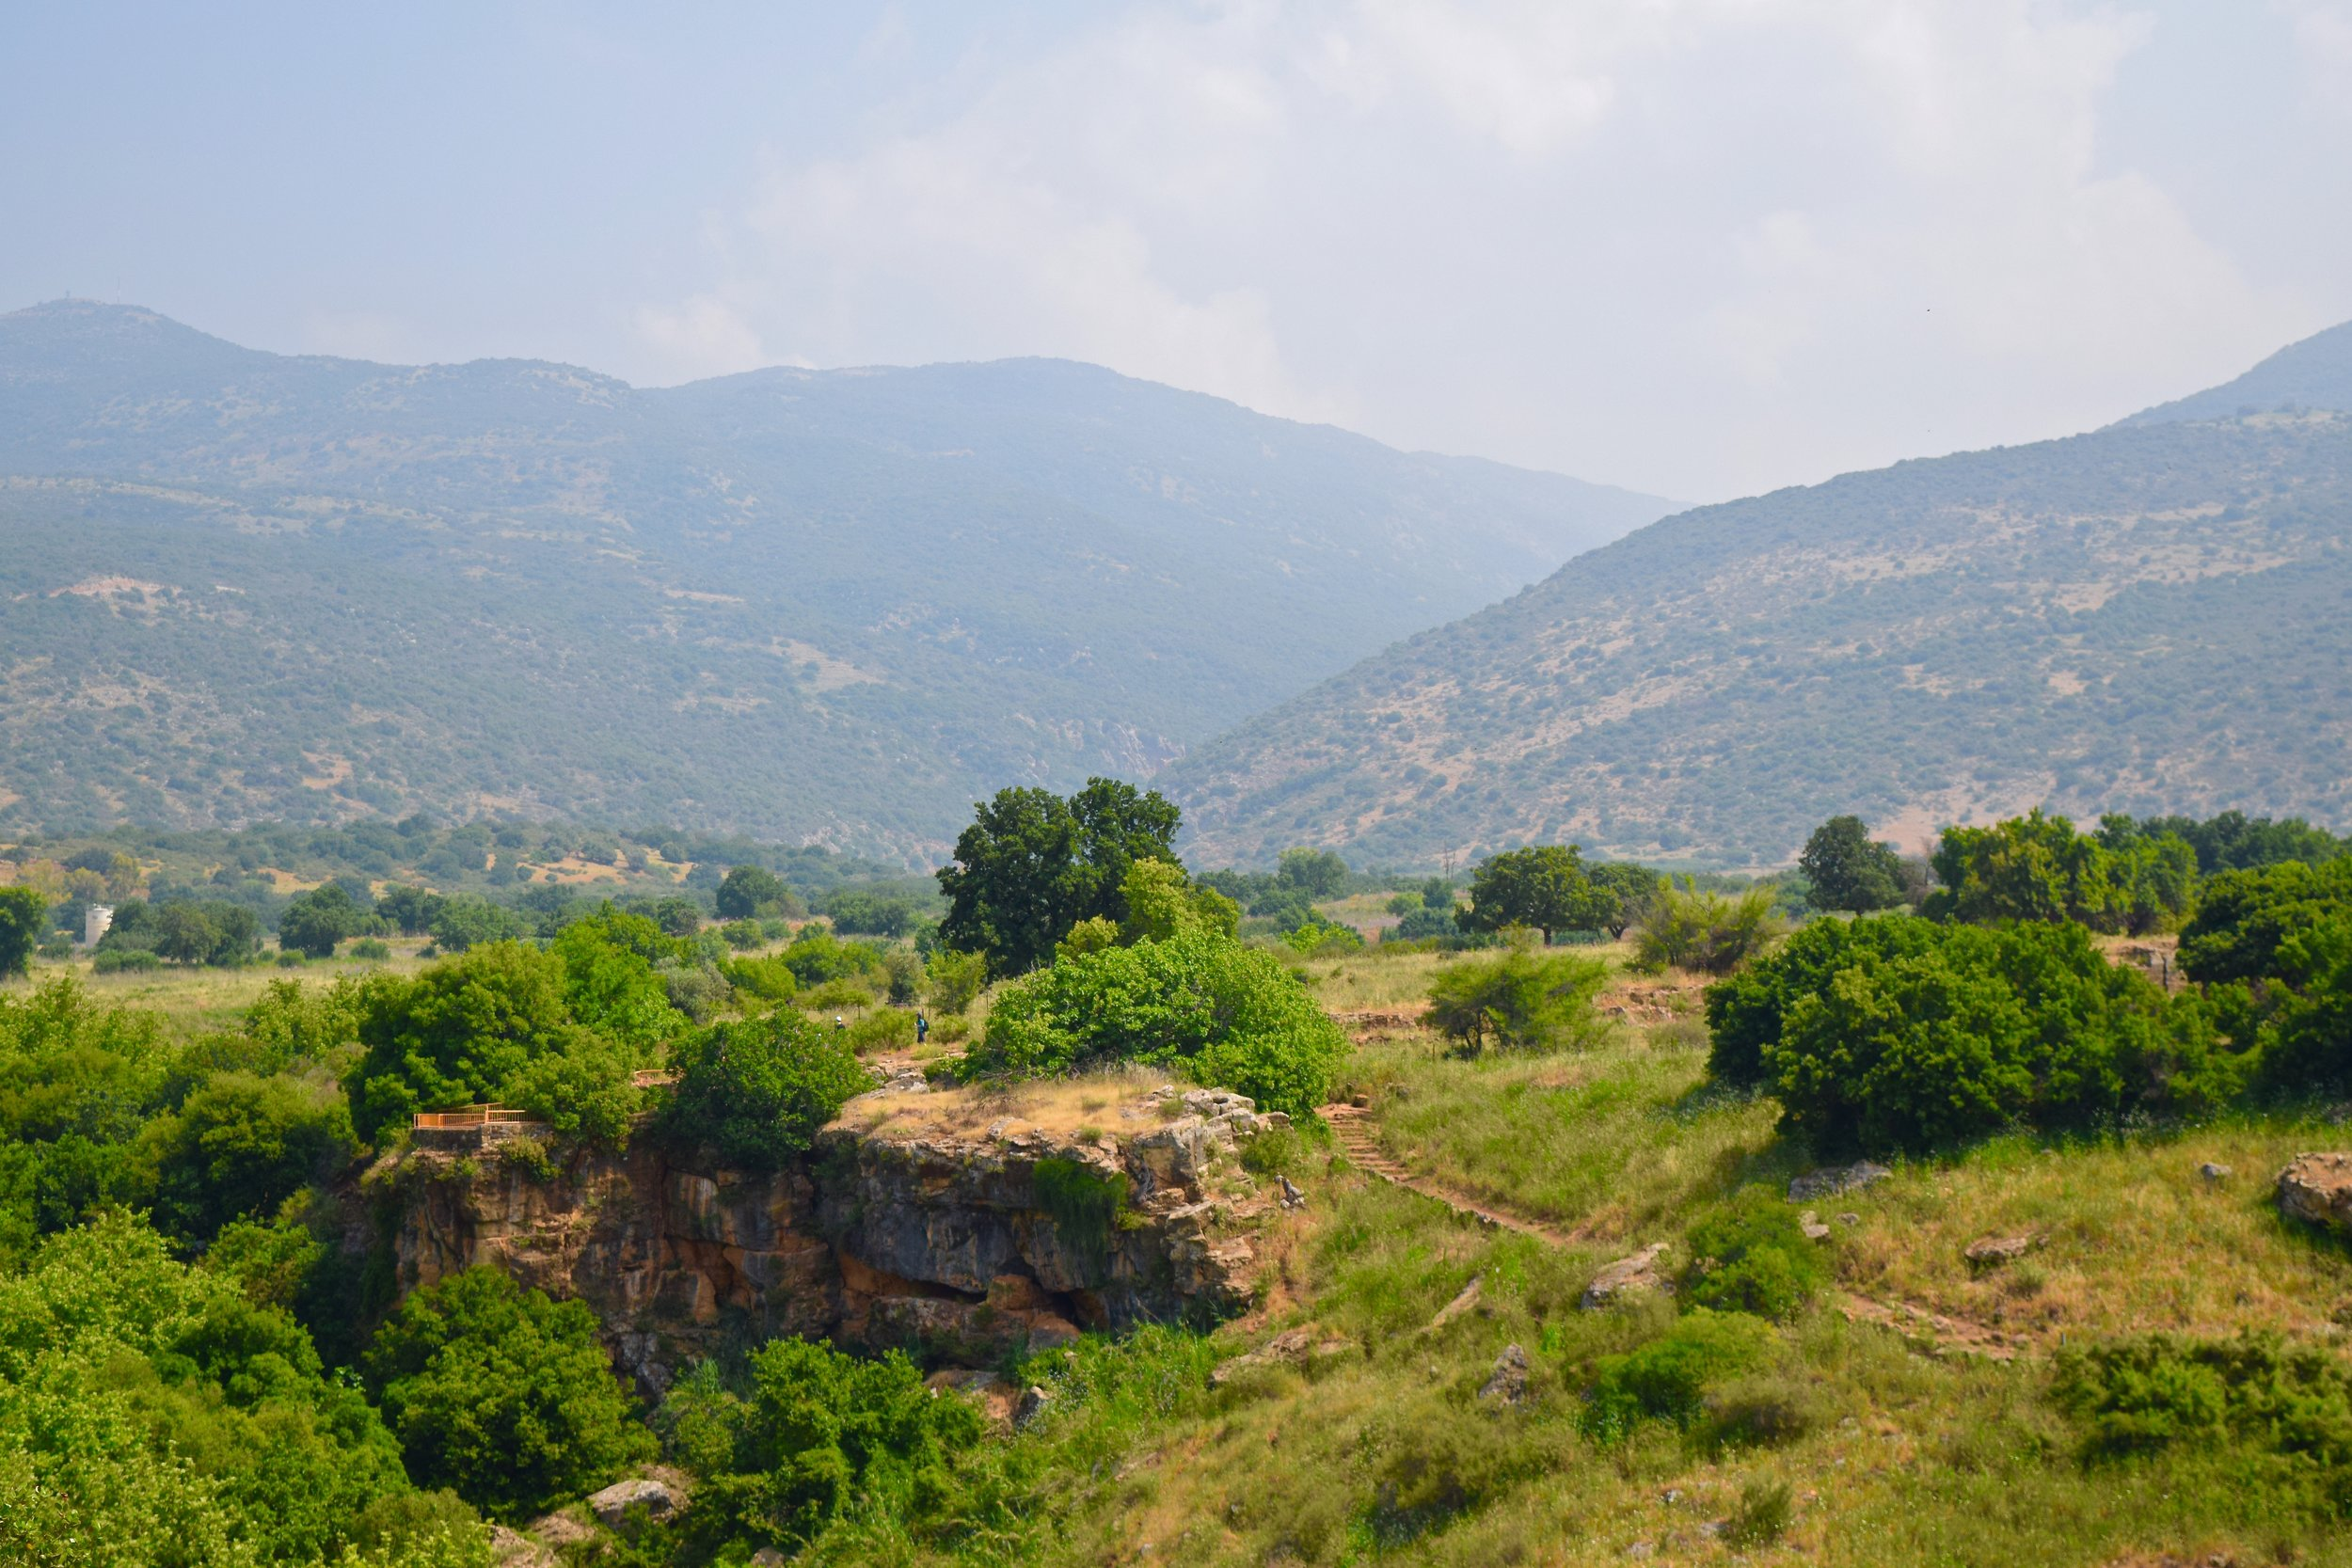 Views from the Banias Natural Reserve